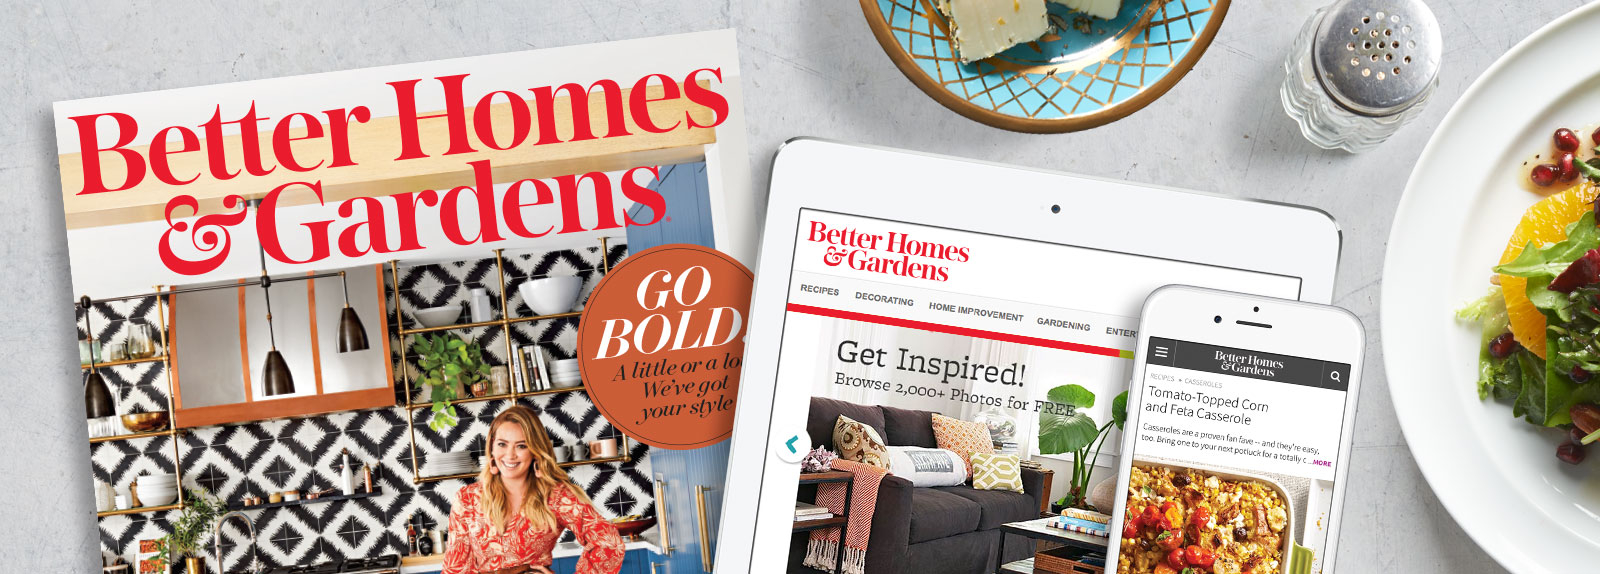 Better Homes & Gardens | Meredith Regarding Editorial Calendar Better Homes And Gardens